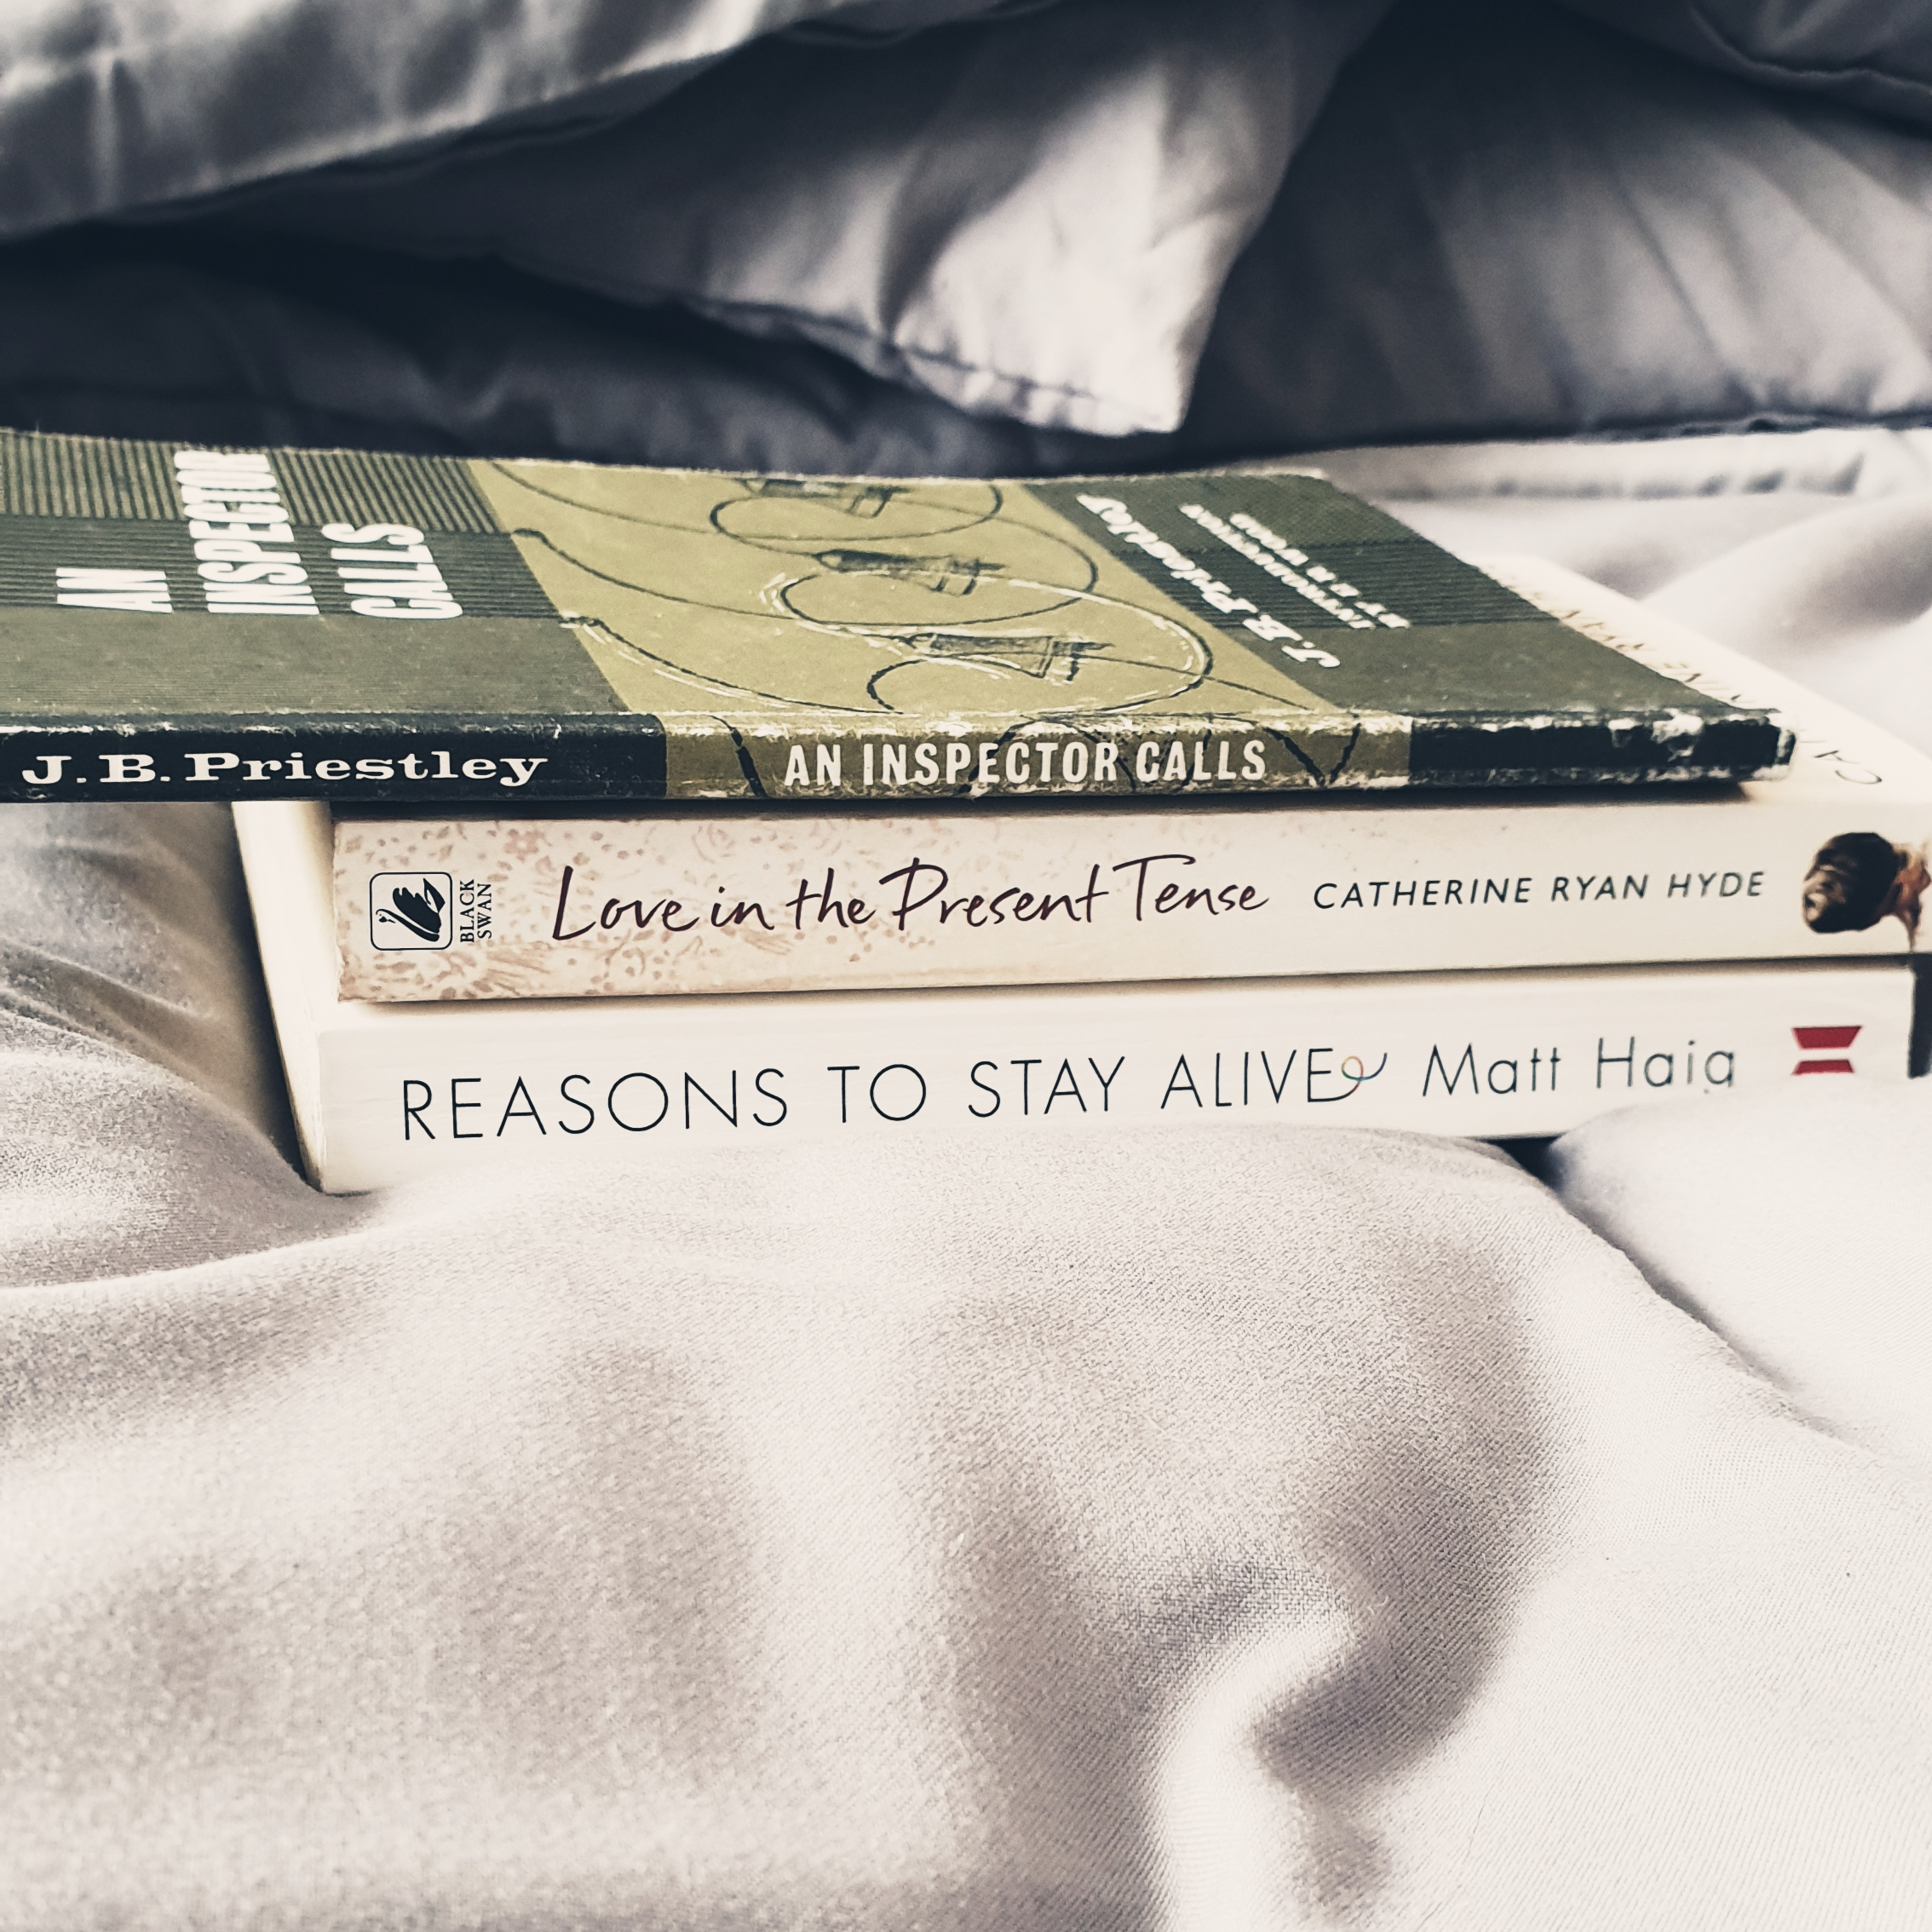 Bookspine poetry - An Inspector Calls - Love in the Present Tense - Reasons to Stay Alive - The Last Krystallos